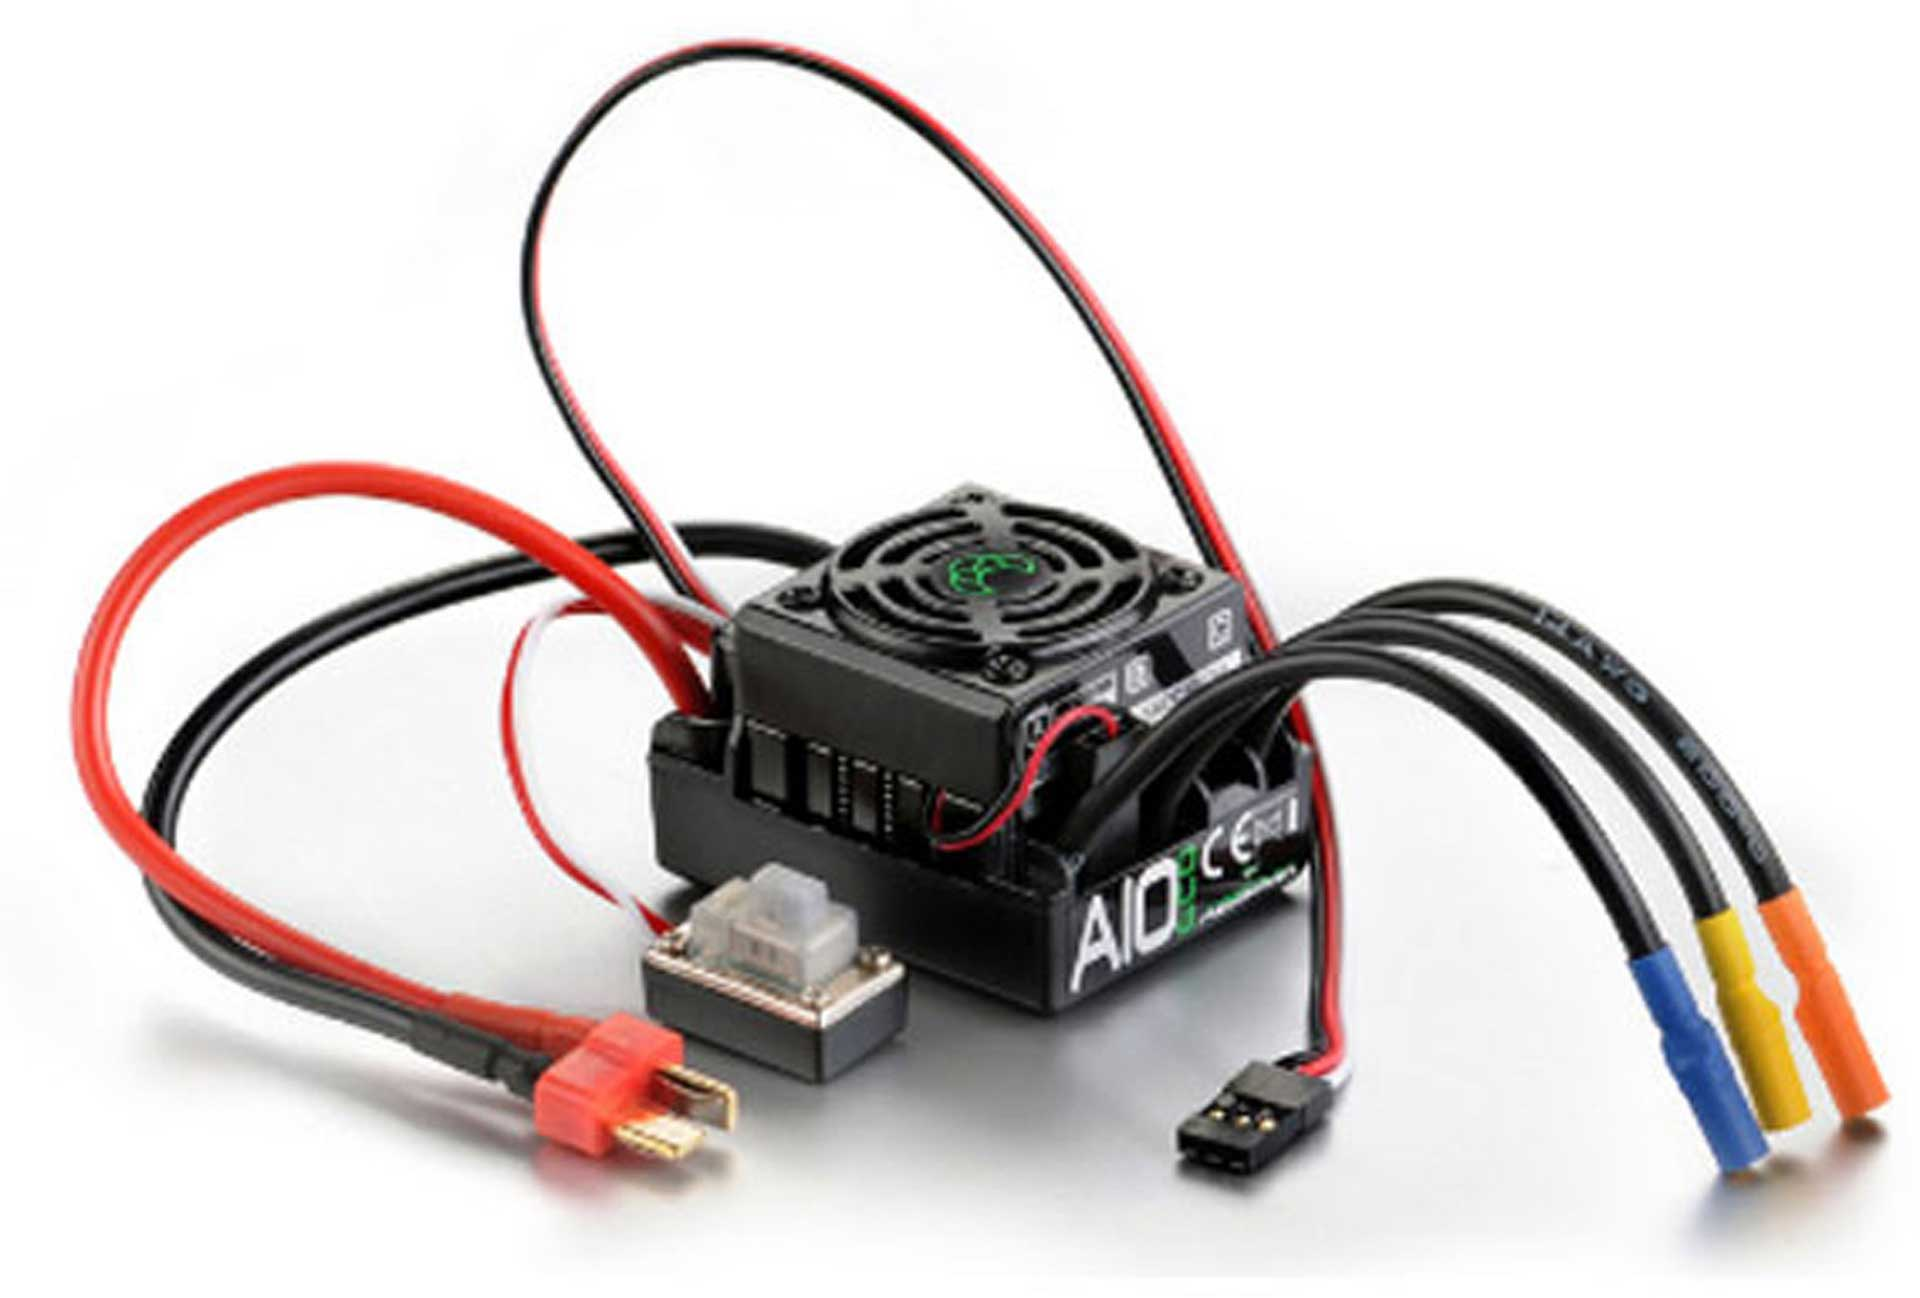 ABSIMA THRUST A10 ECO 50A BRUSHLESS ESC 1/10 WATERPROOF 2-3S